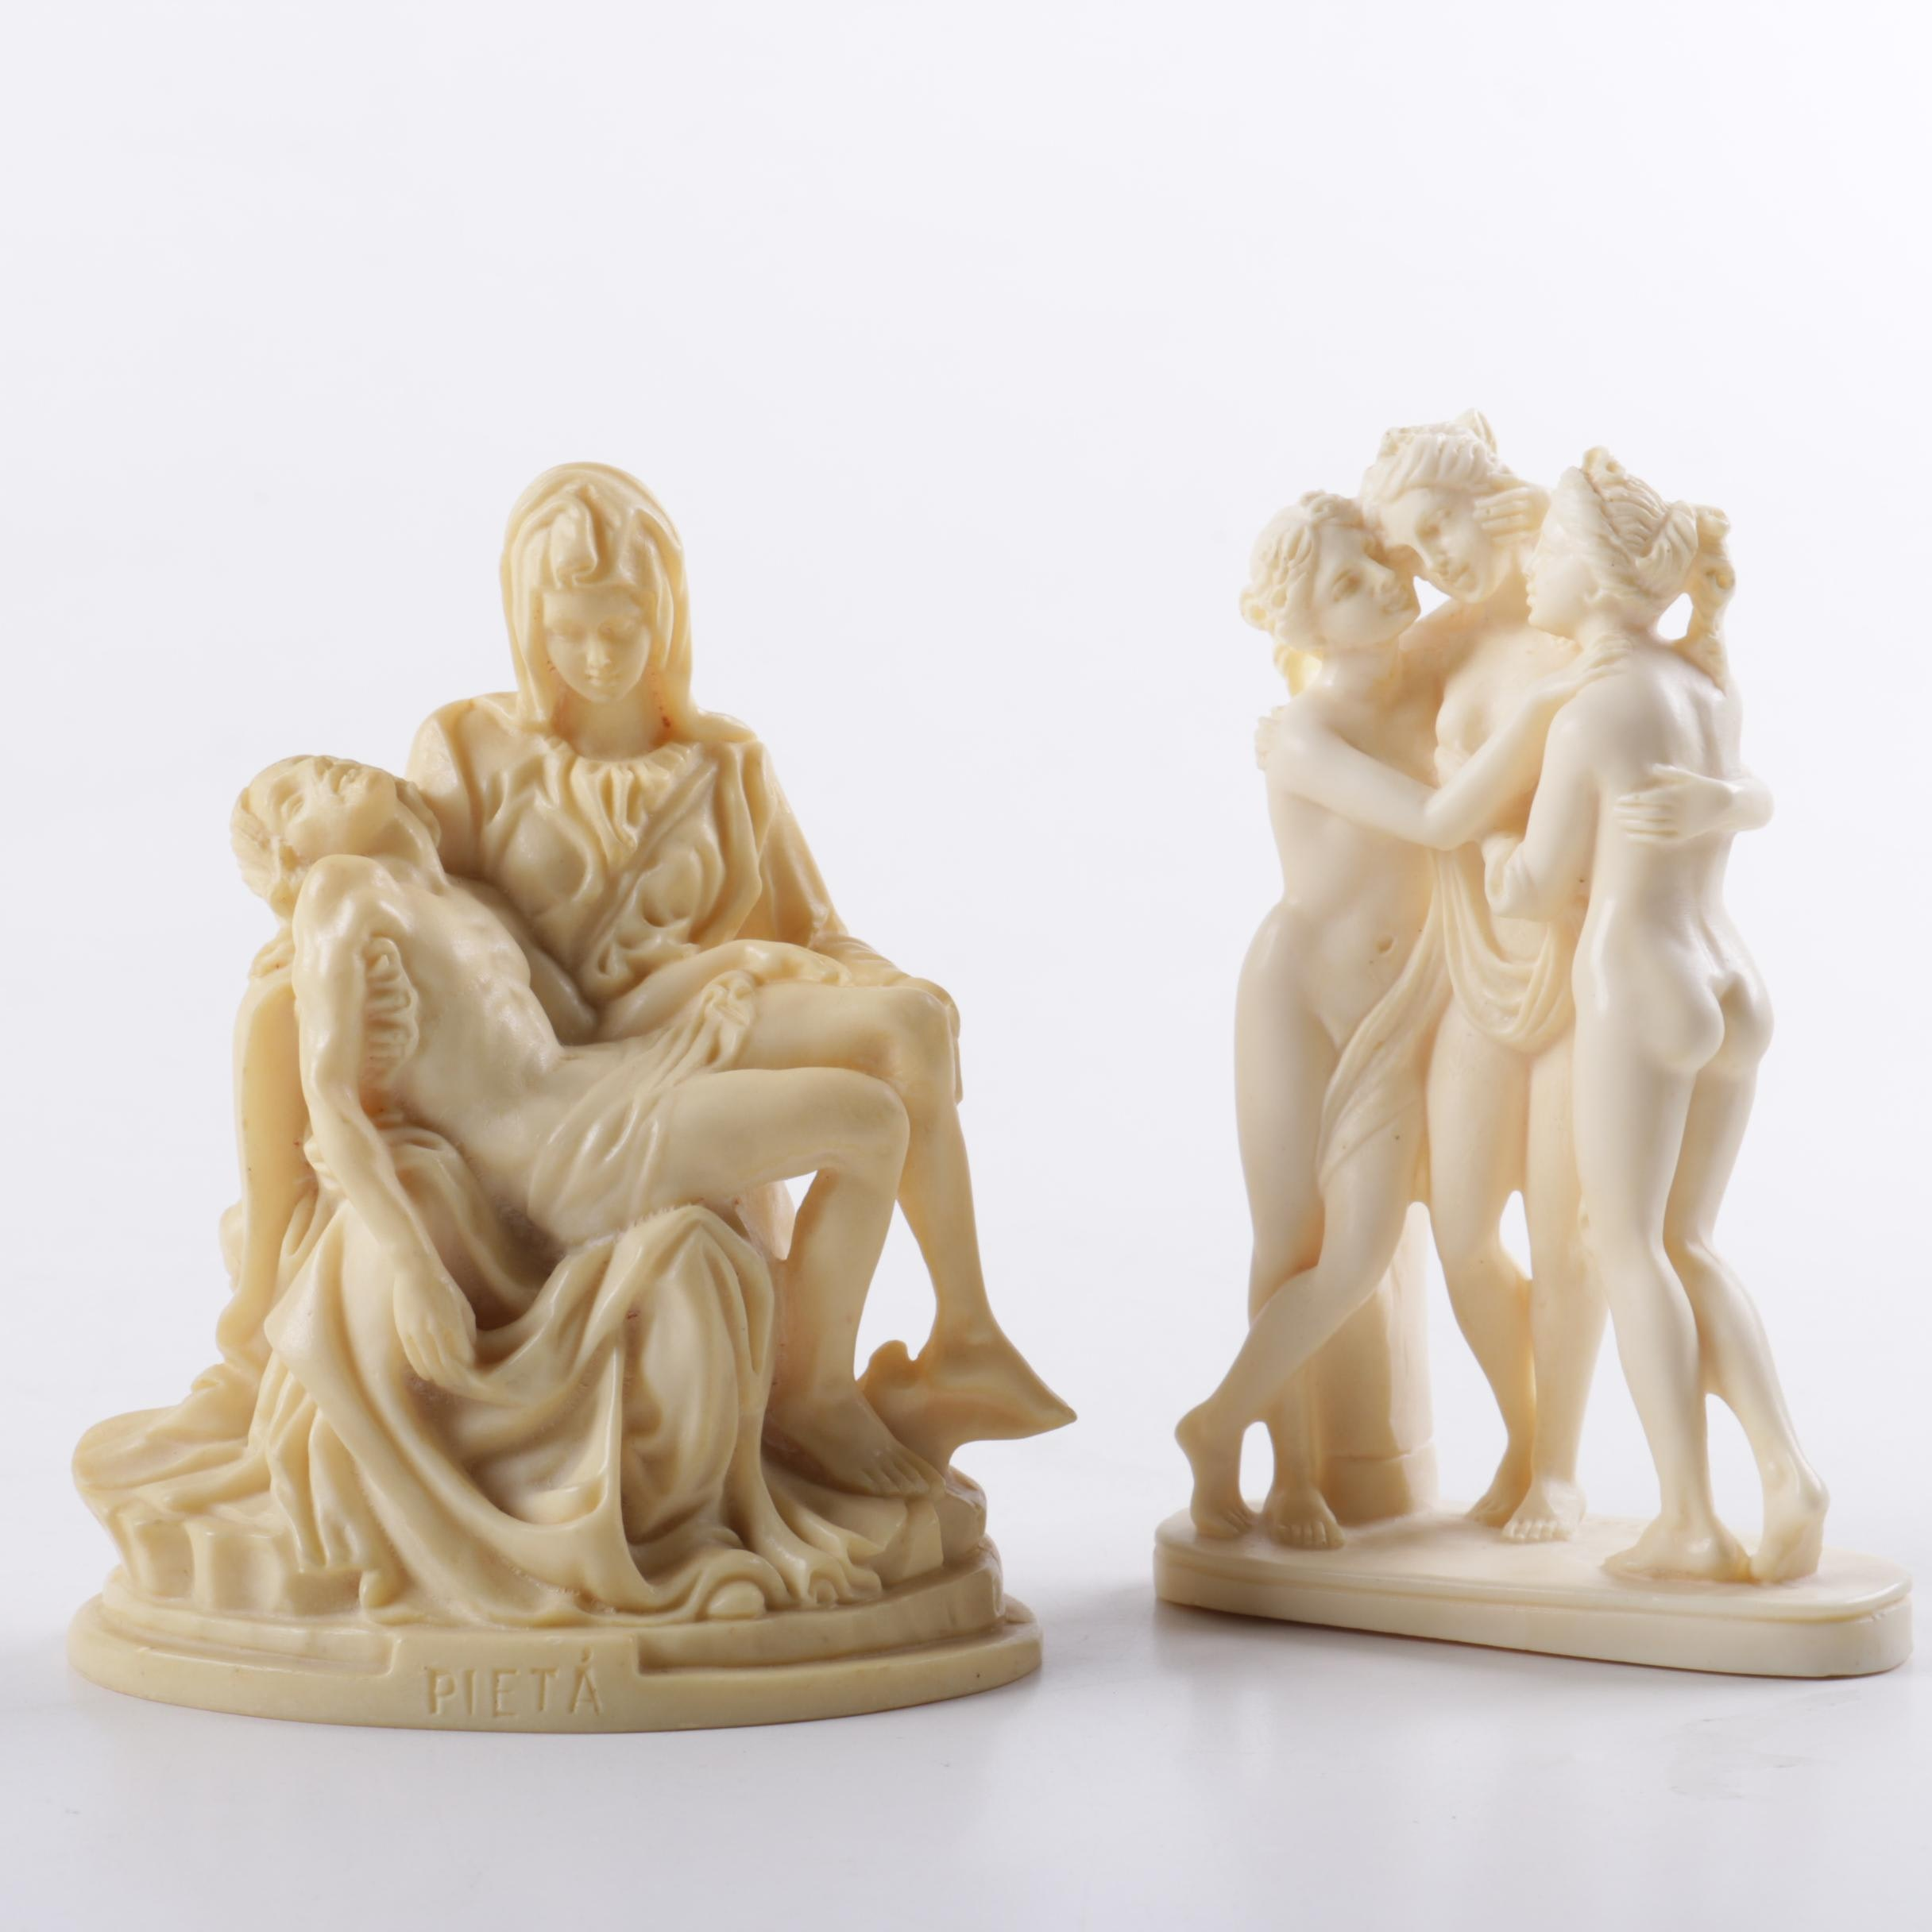 A. Santini Resin Sculptures After Works by Michelangelo and Antonio Canova